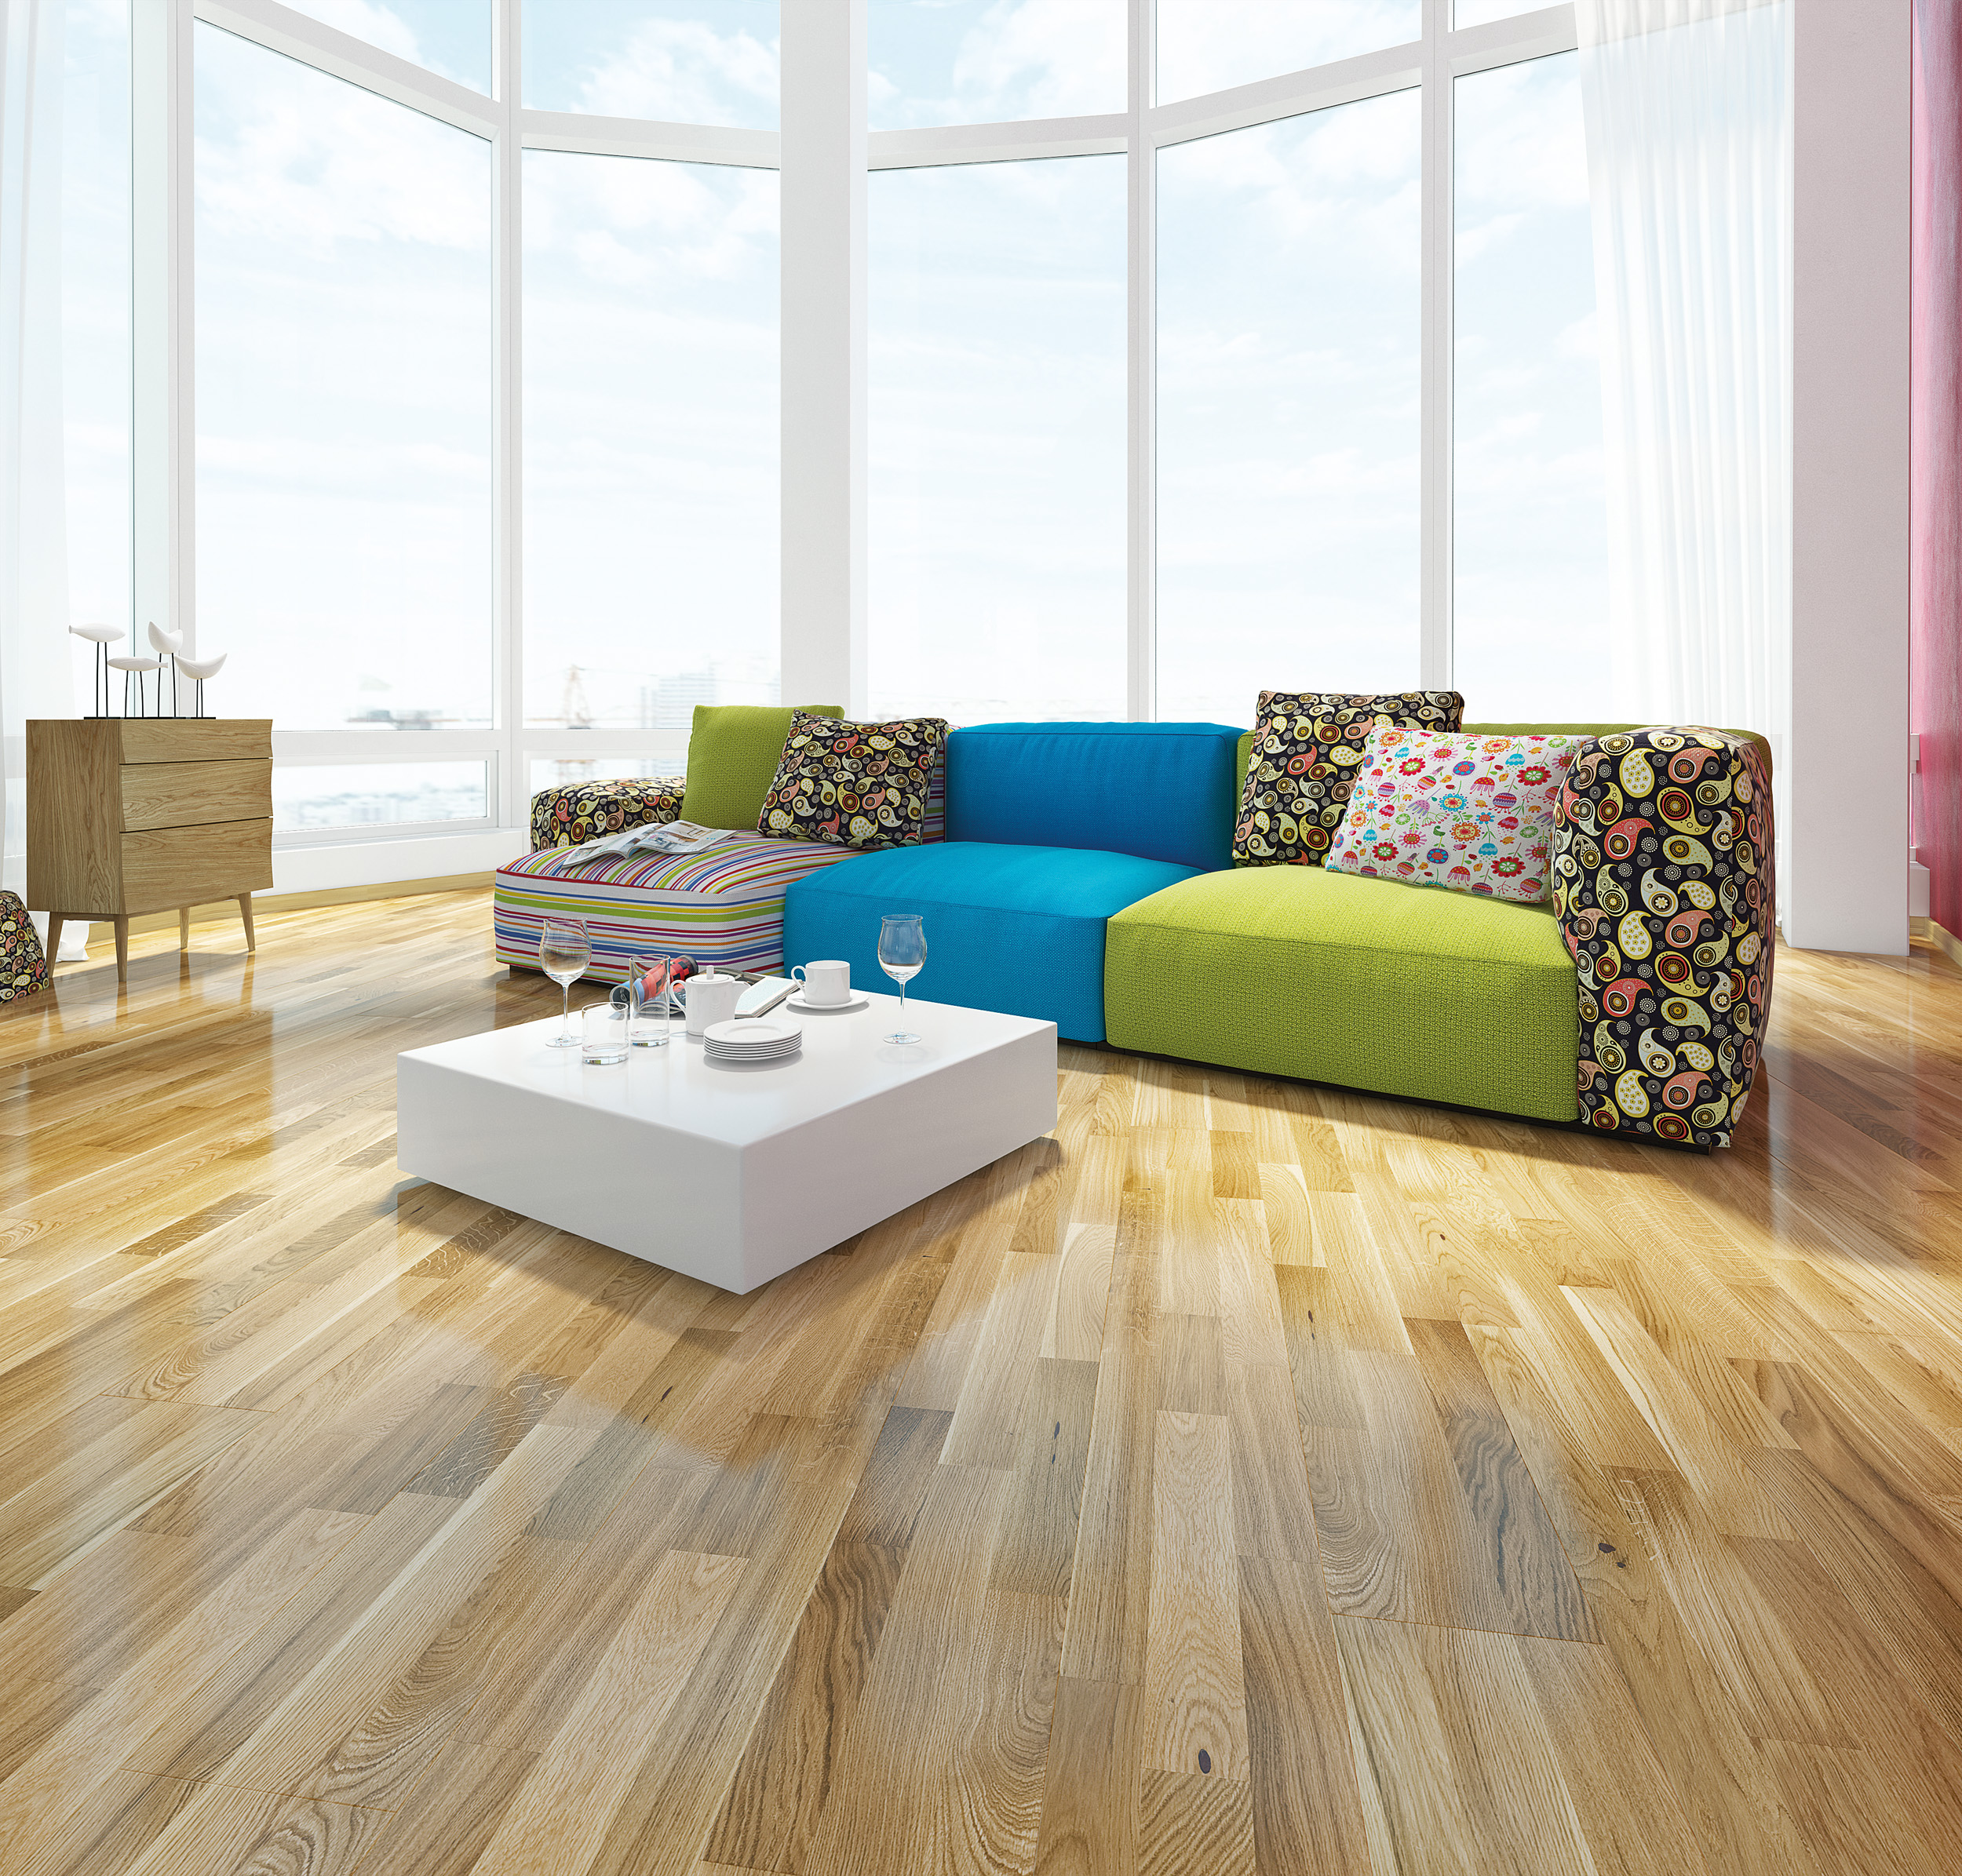 3WG000240_Brillance_Molti_interior_full